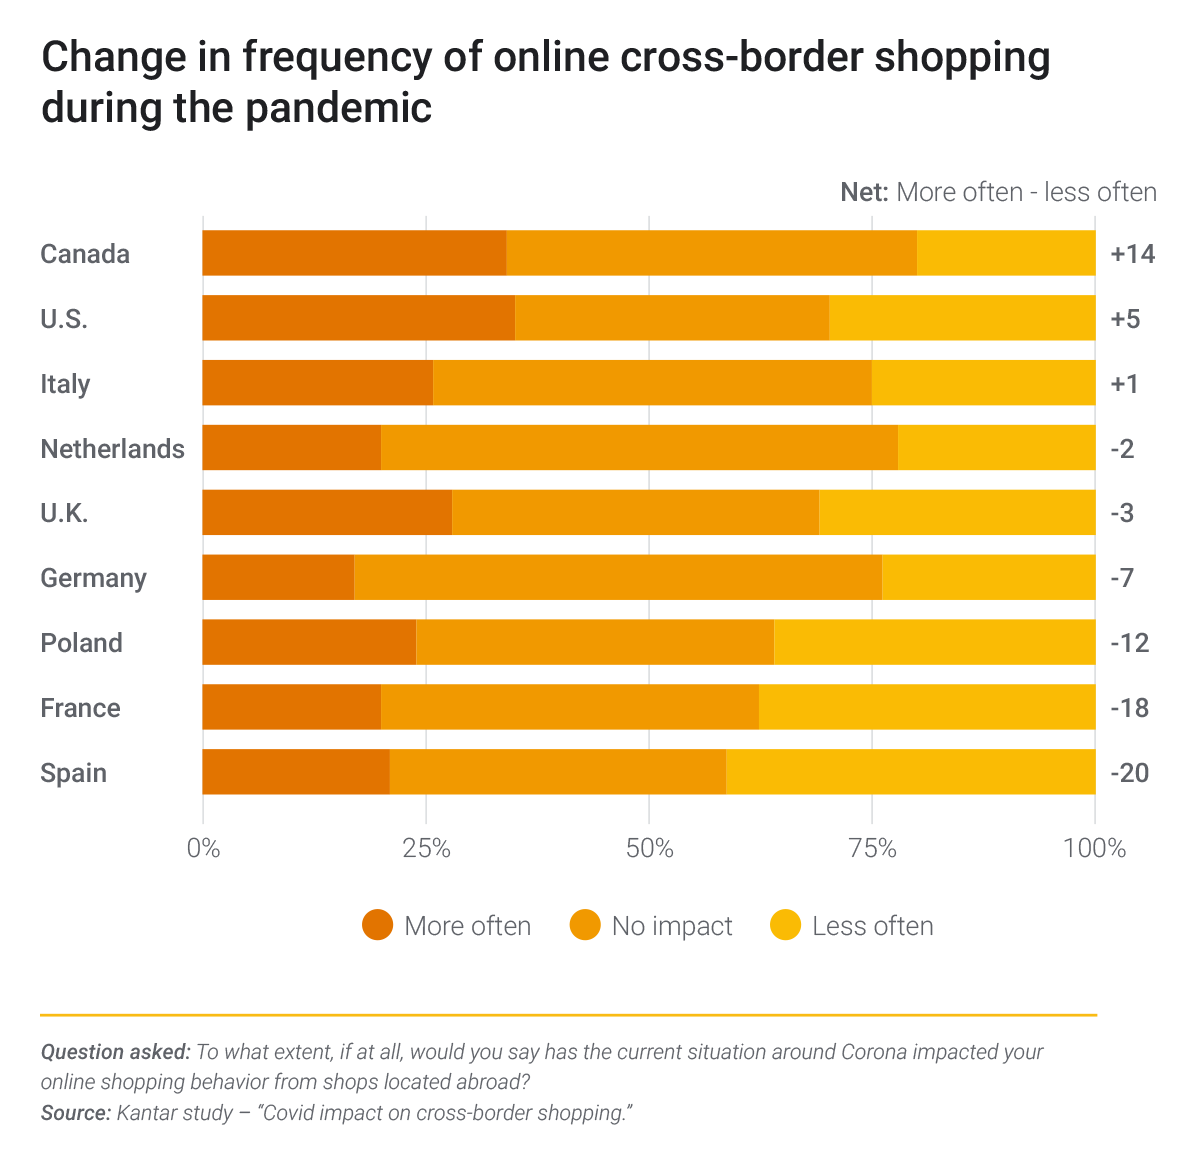 Chart showing change in frequency of online cross-border shopping during the pandemic